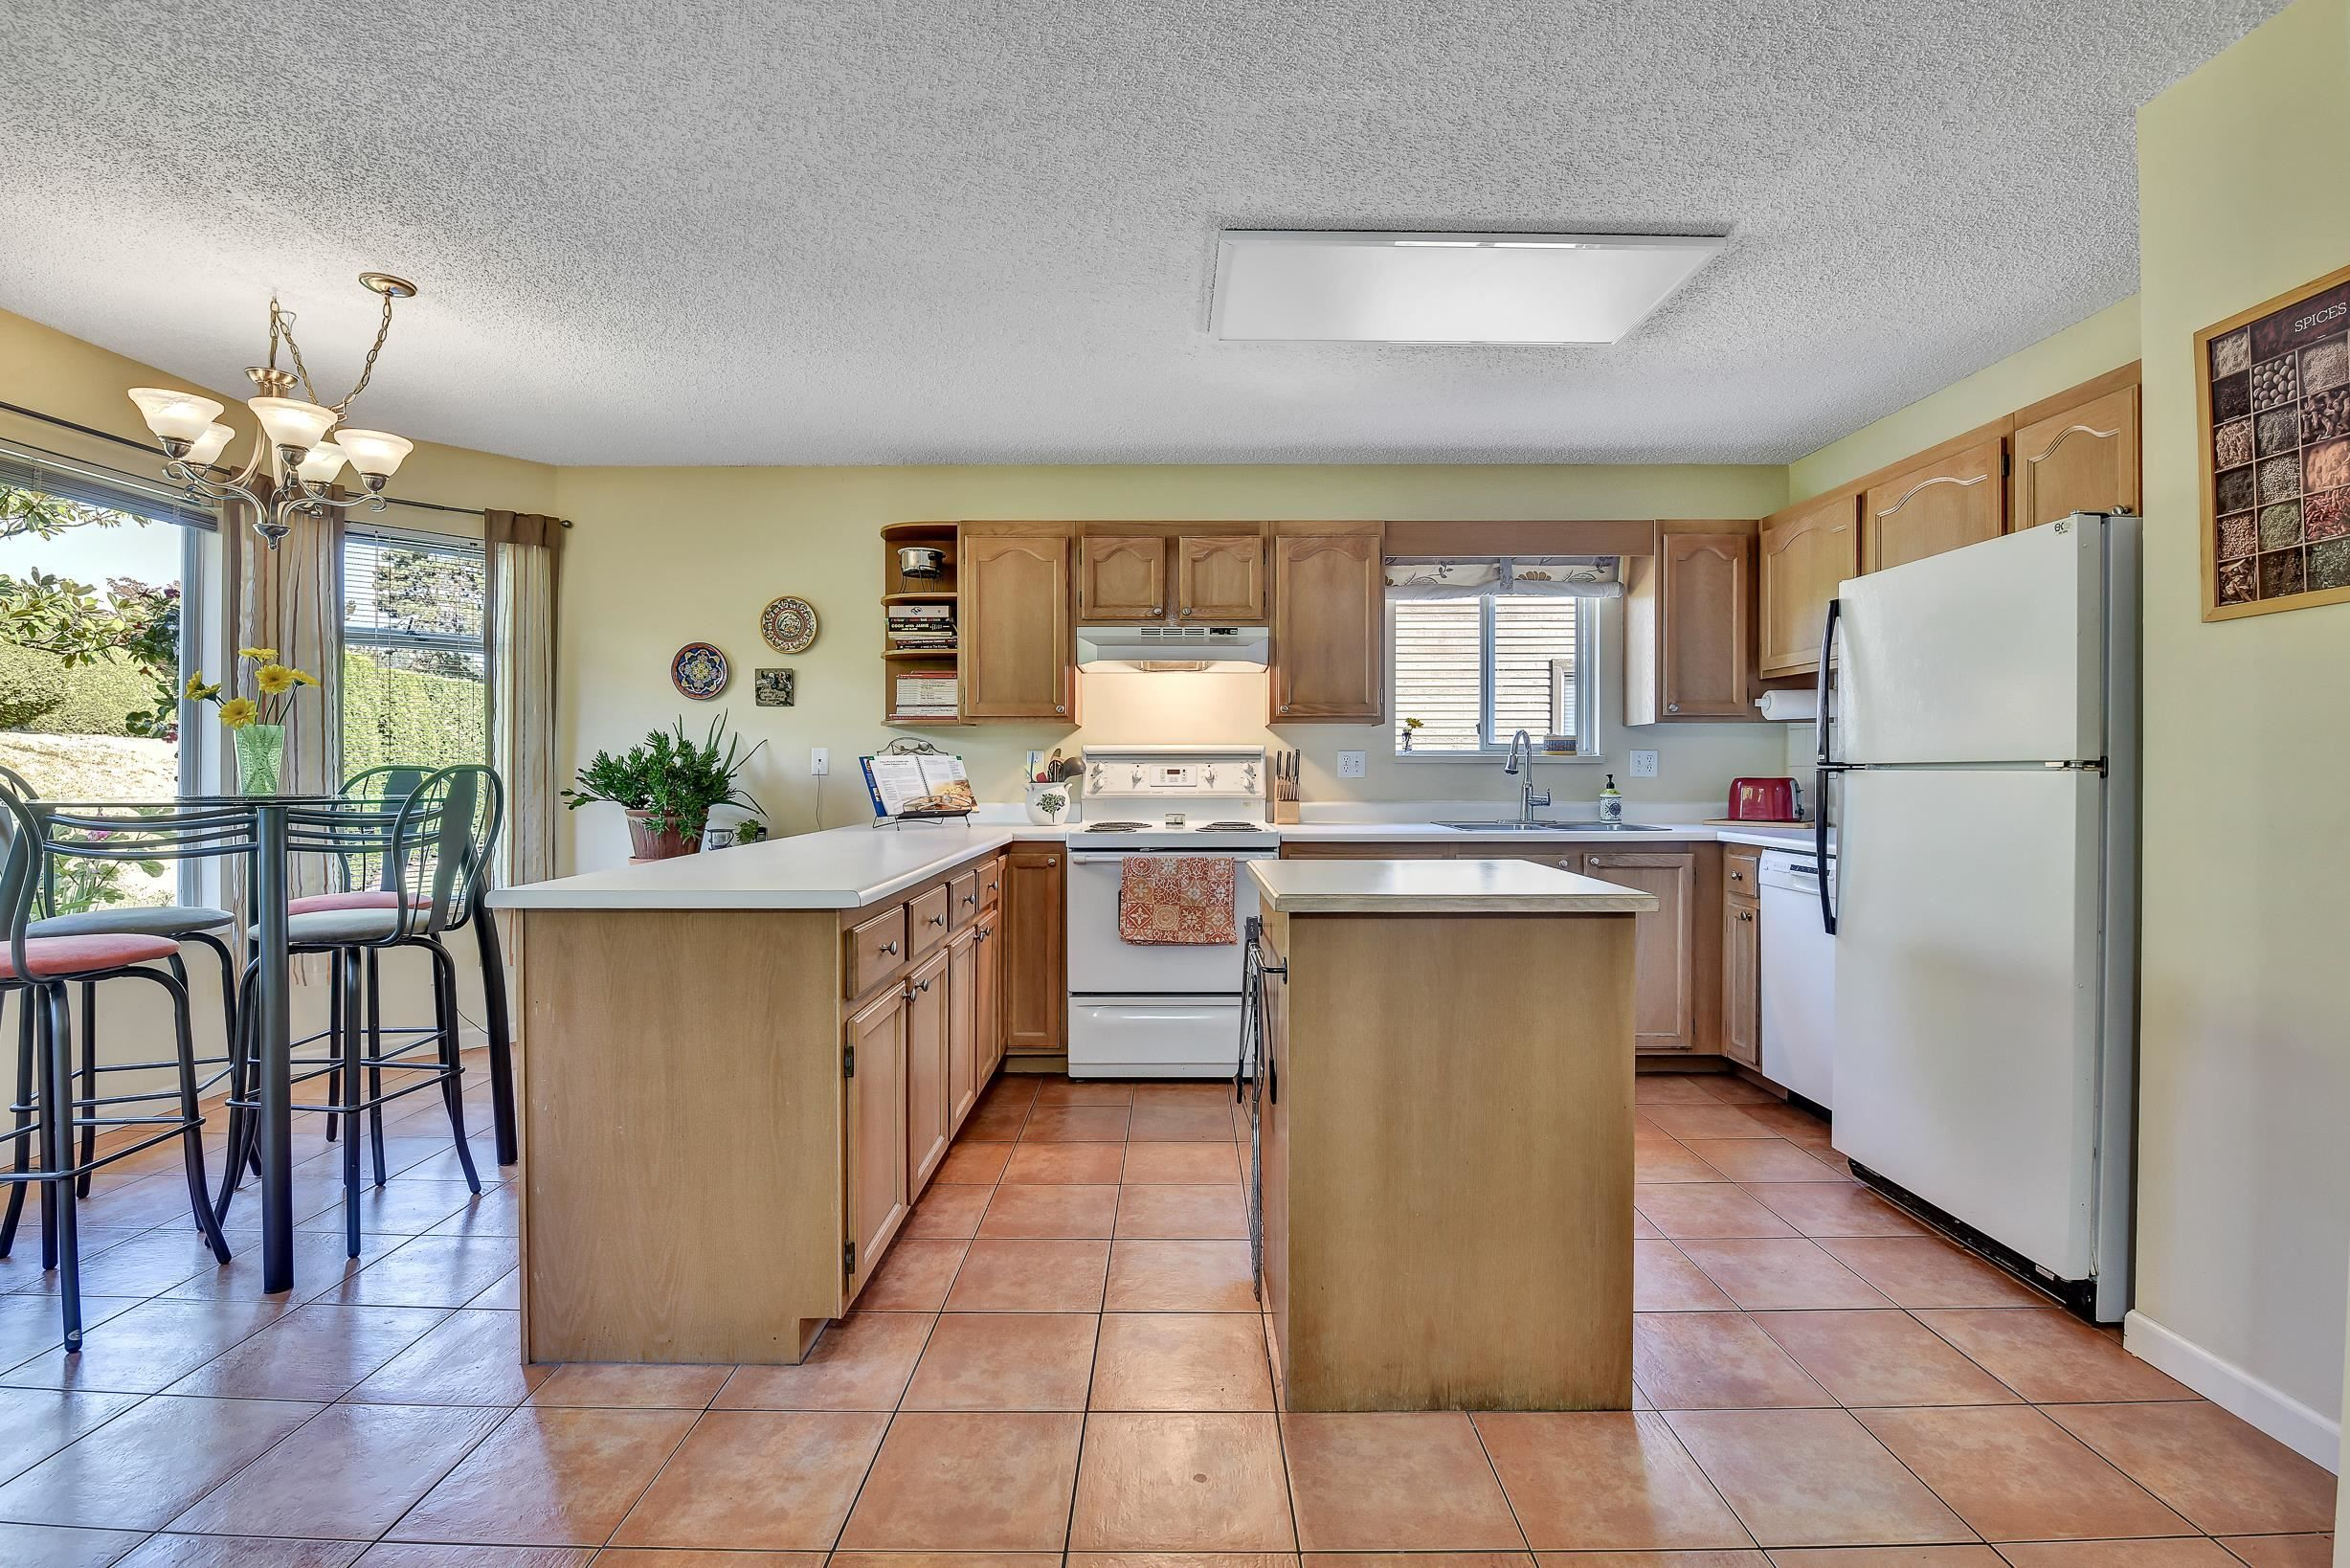 """Photo 11: Photos: 208 1140 CASTLE Crescent in Port Coquitlam: Citadel PQ Townhouse for sale in """"THE UPLANDS"""" : MLS®# R2609078"""